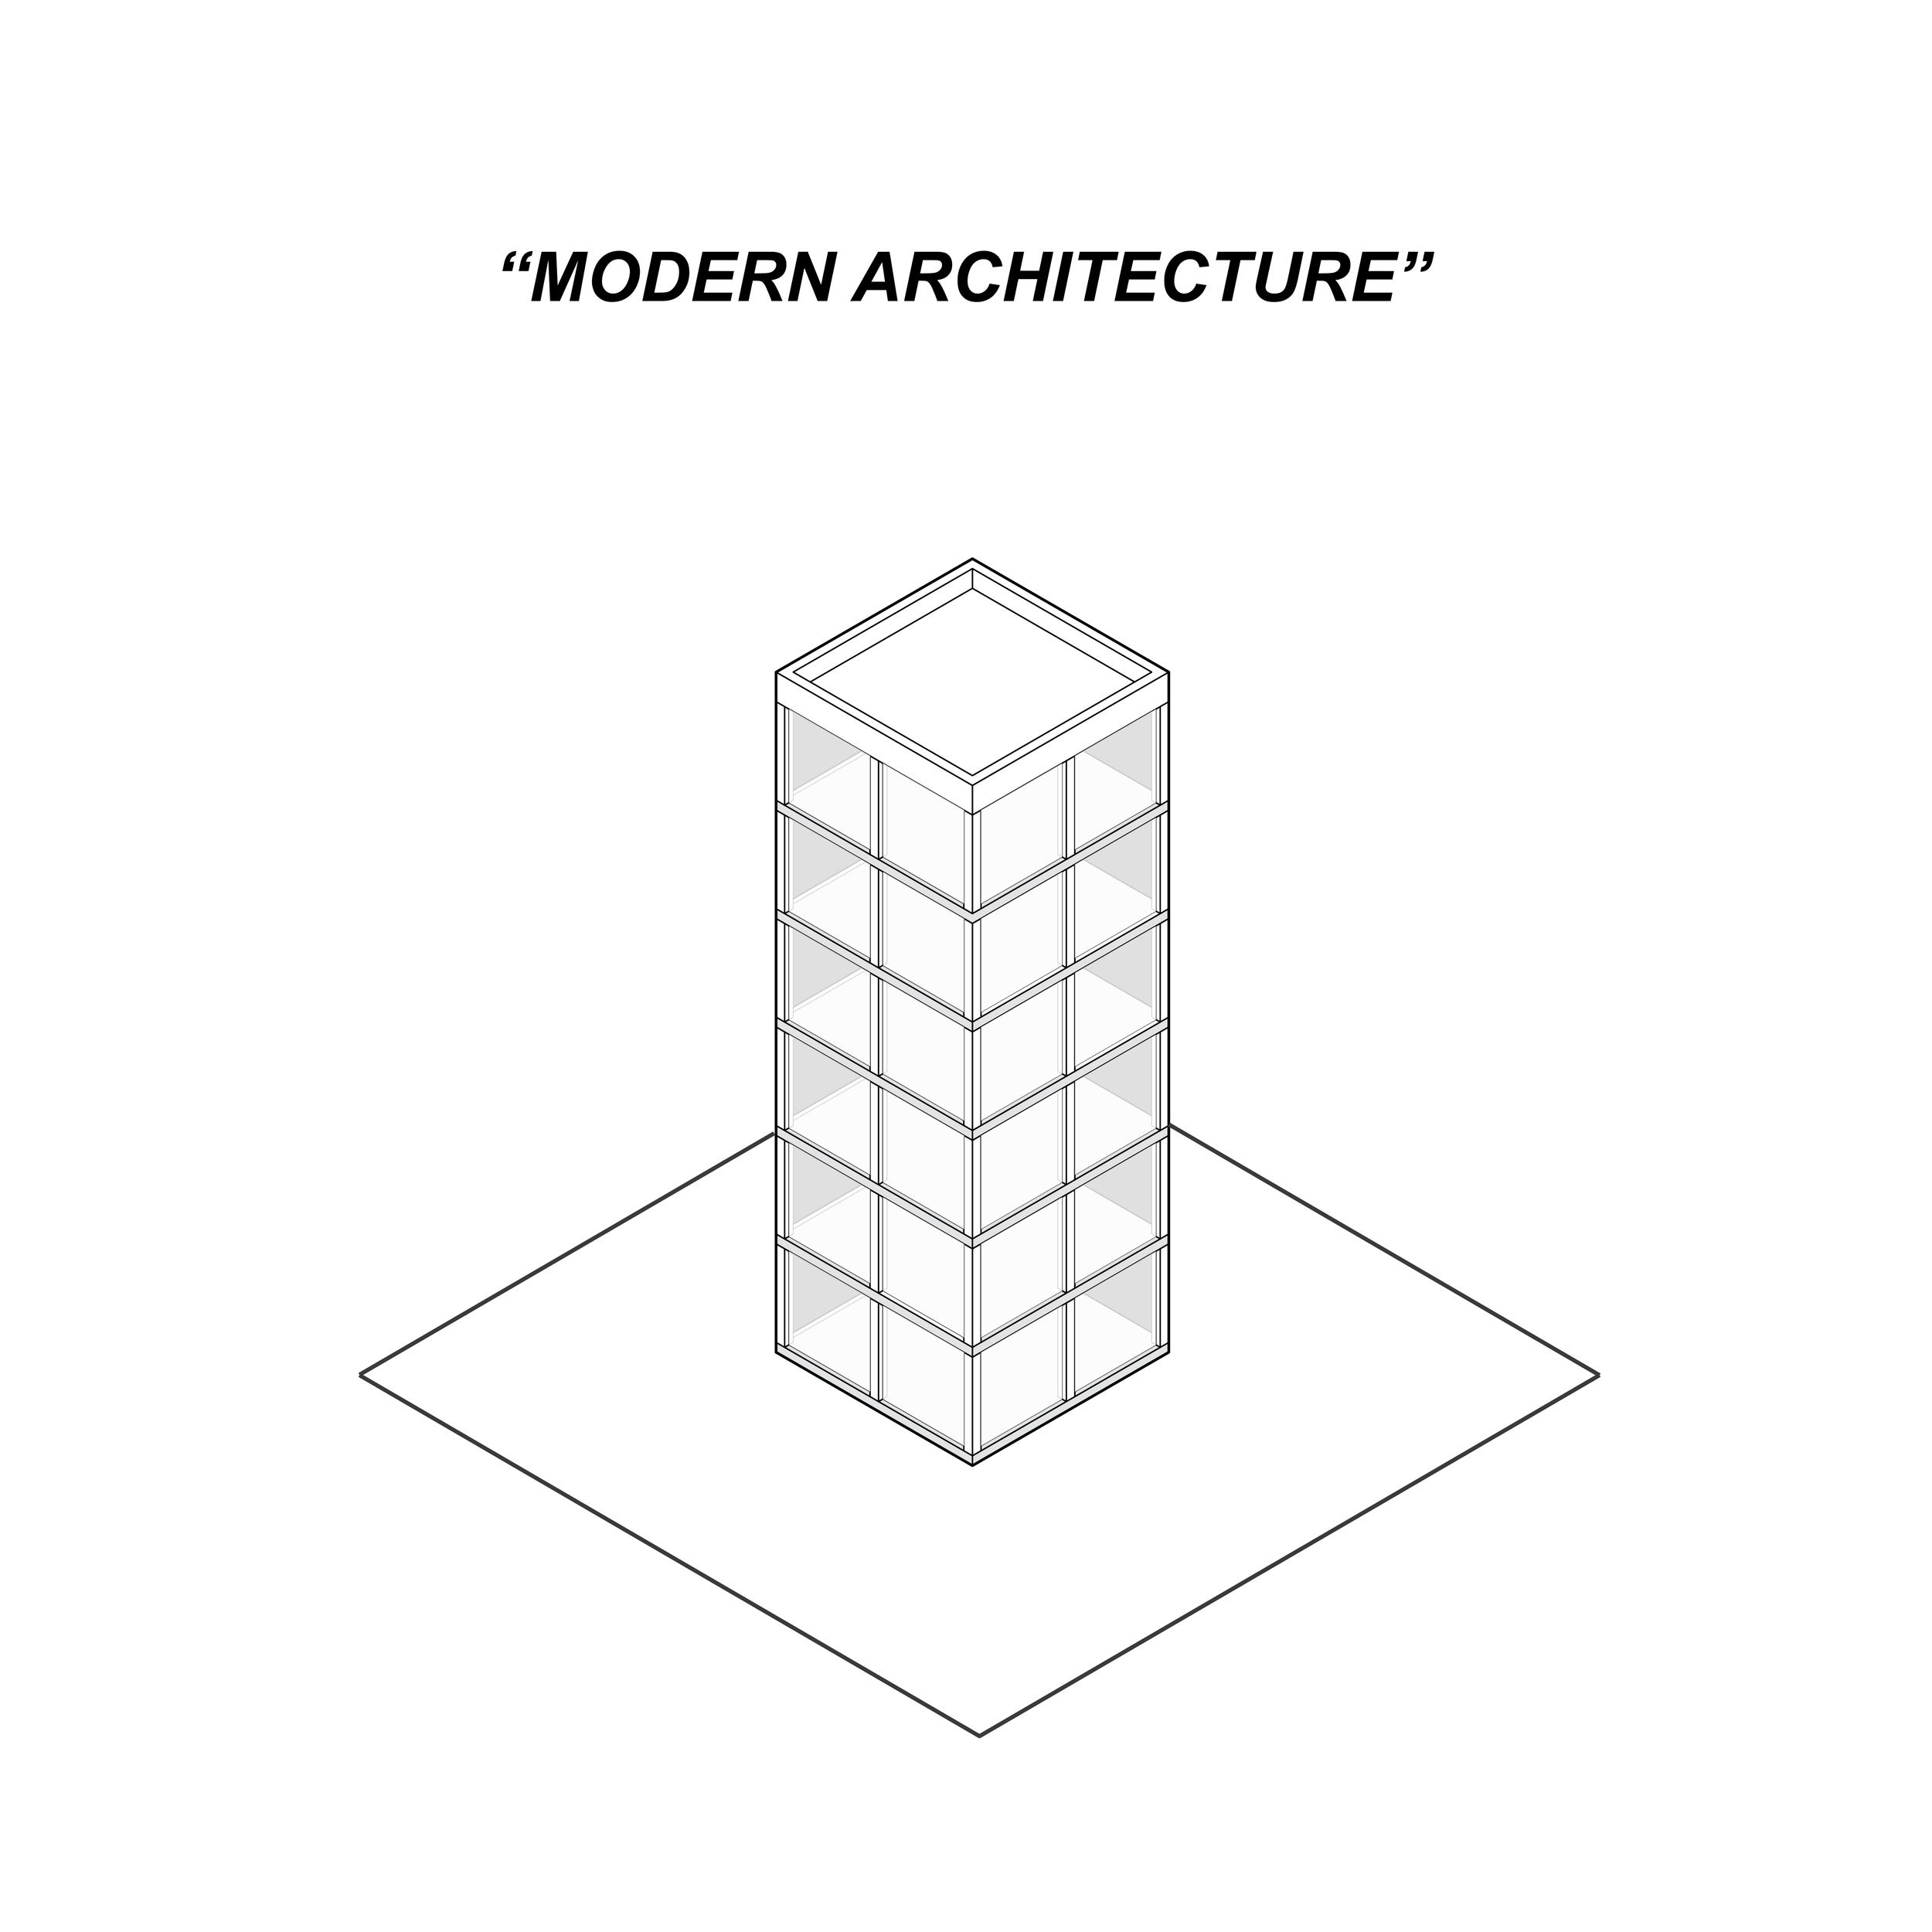 MODERNARCHITECTURE.png